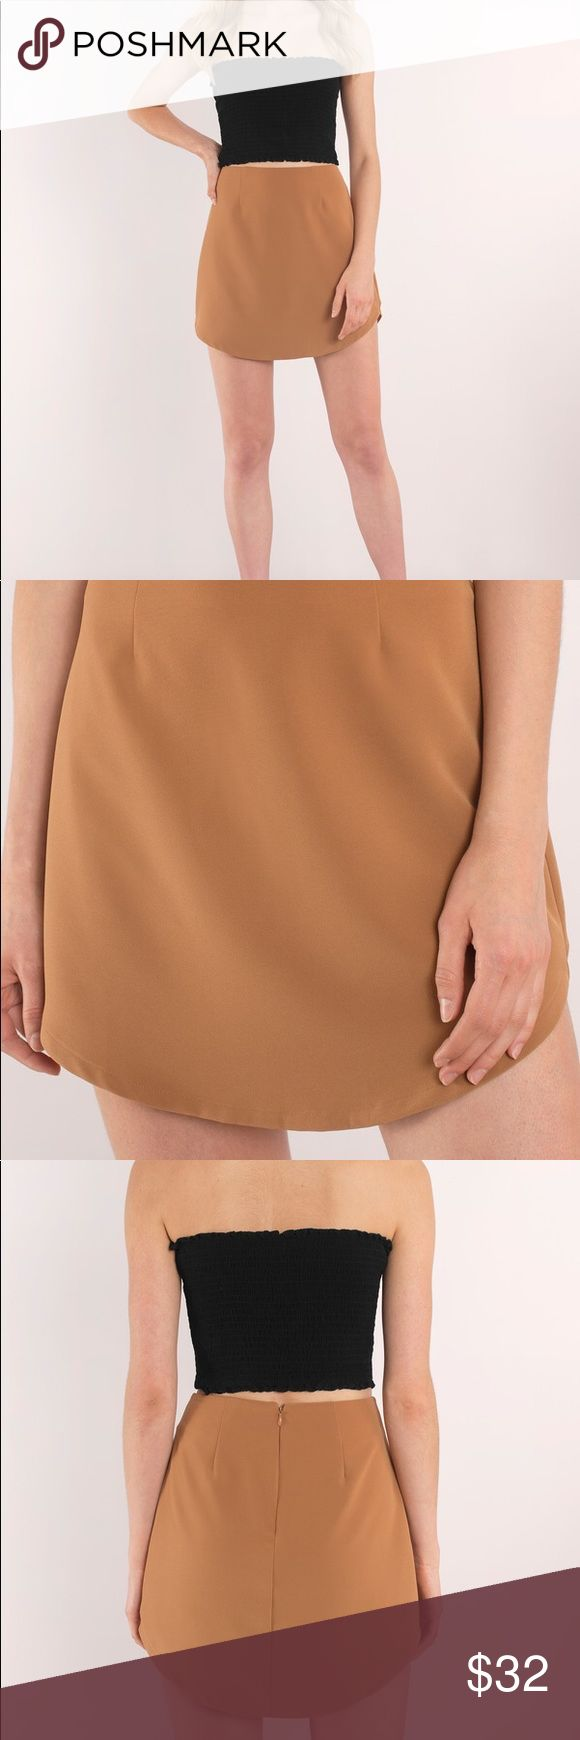 🆕 NWOT 💎 Tobi Celise Mini Skirt in Carmel Dress this beautiful piece up for a night out, or with a sweater and tights for a casual weekend day! This skirt is in a beautiful camel color, perfect for fall! :)  This skirt has never been worn! Tobi Skirts Mini